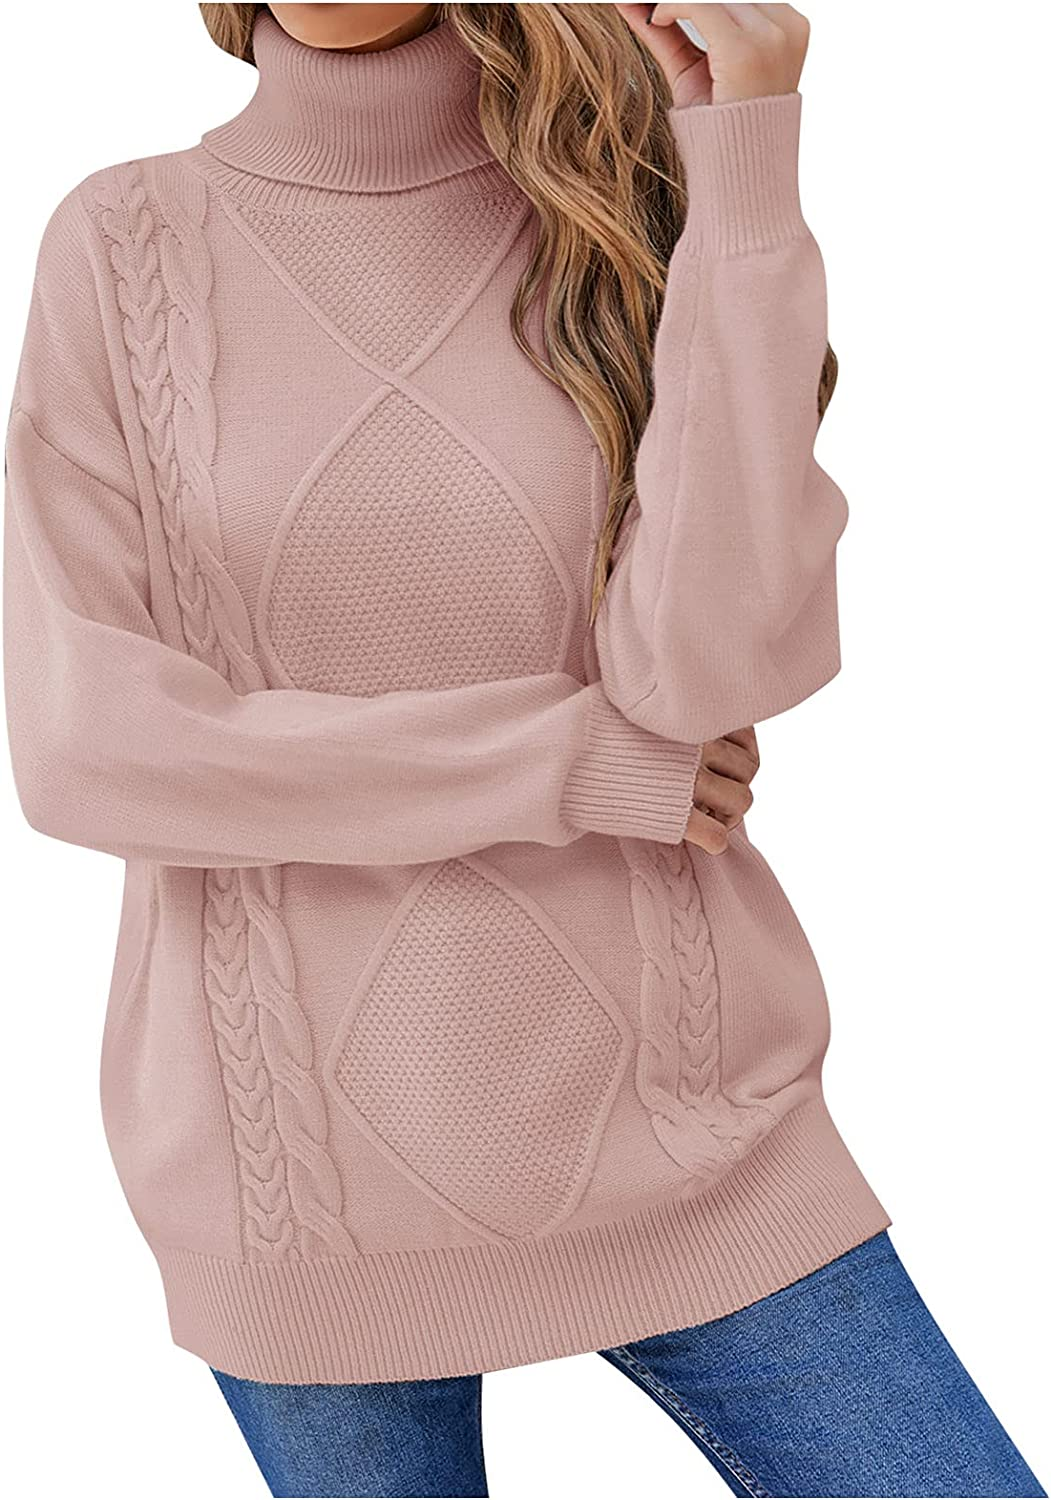 henley thermal shirts Cheap mail order sales for men Women's High Cheap mail order shopping Sleeve Long Swea Neck